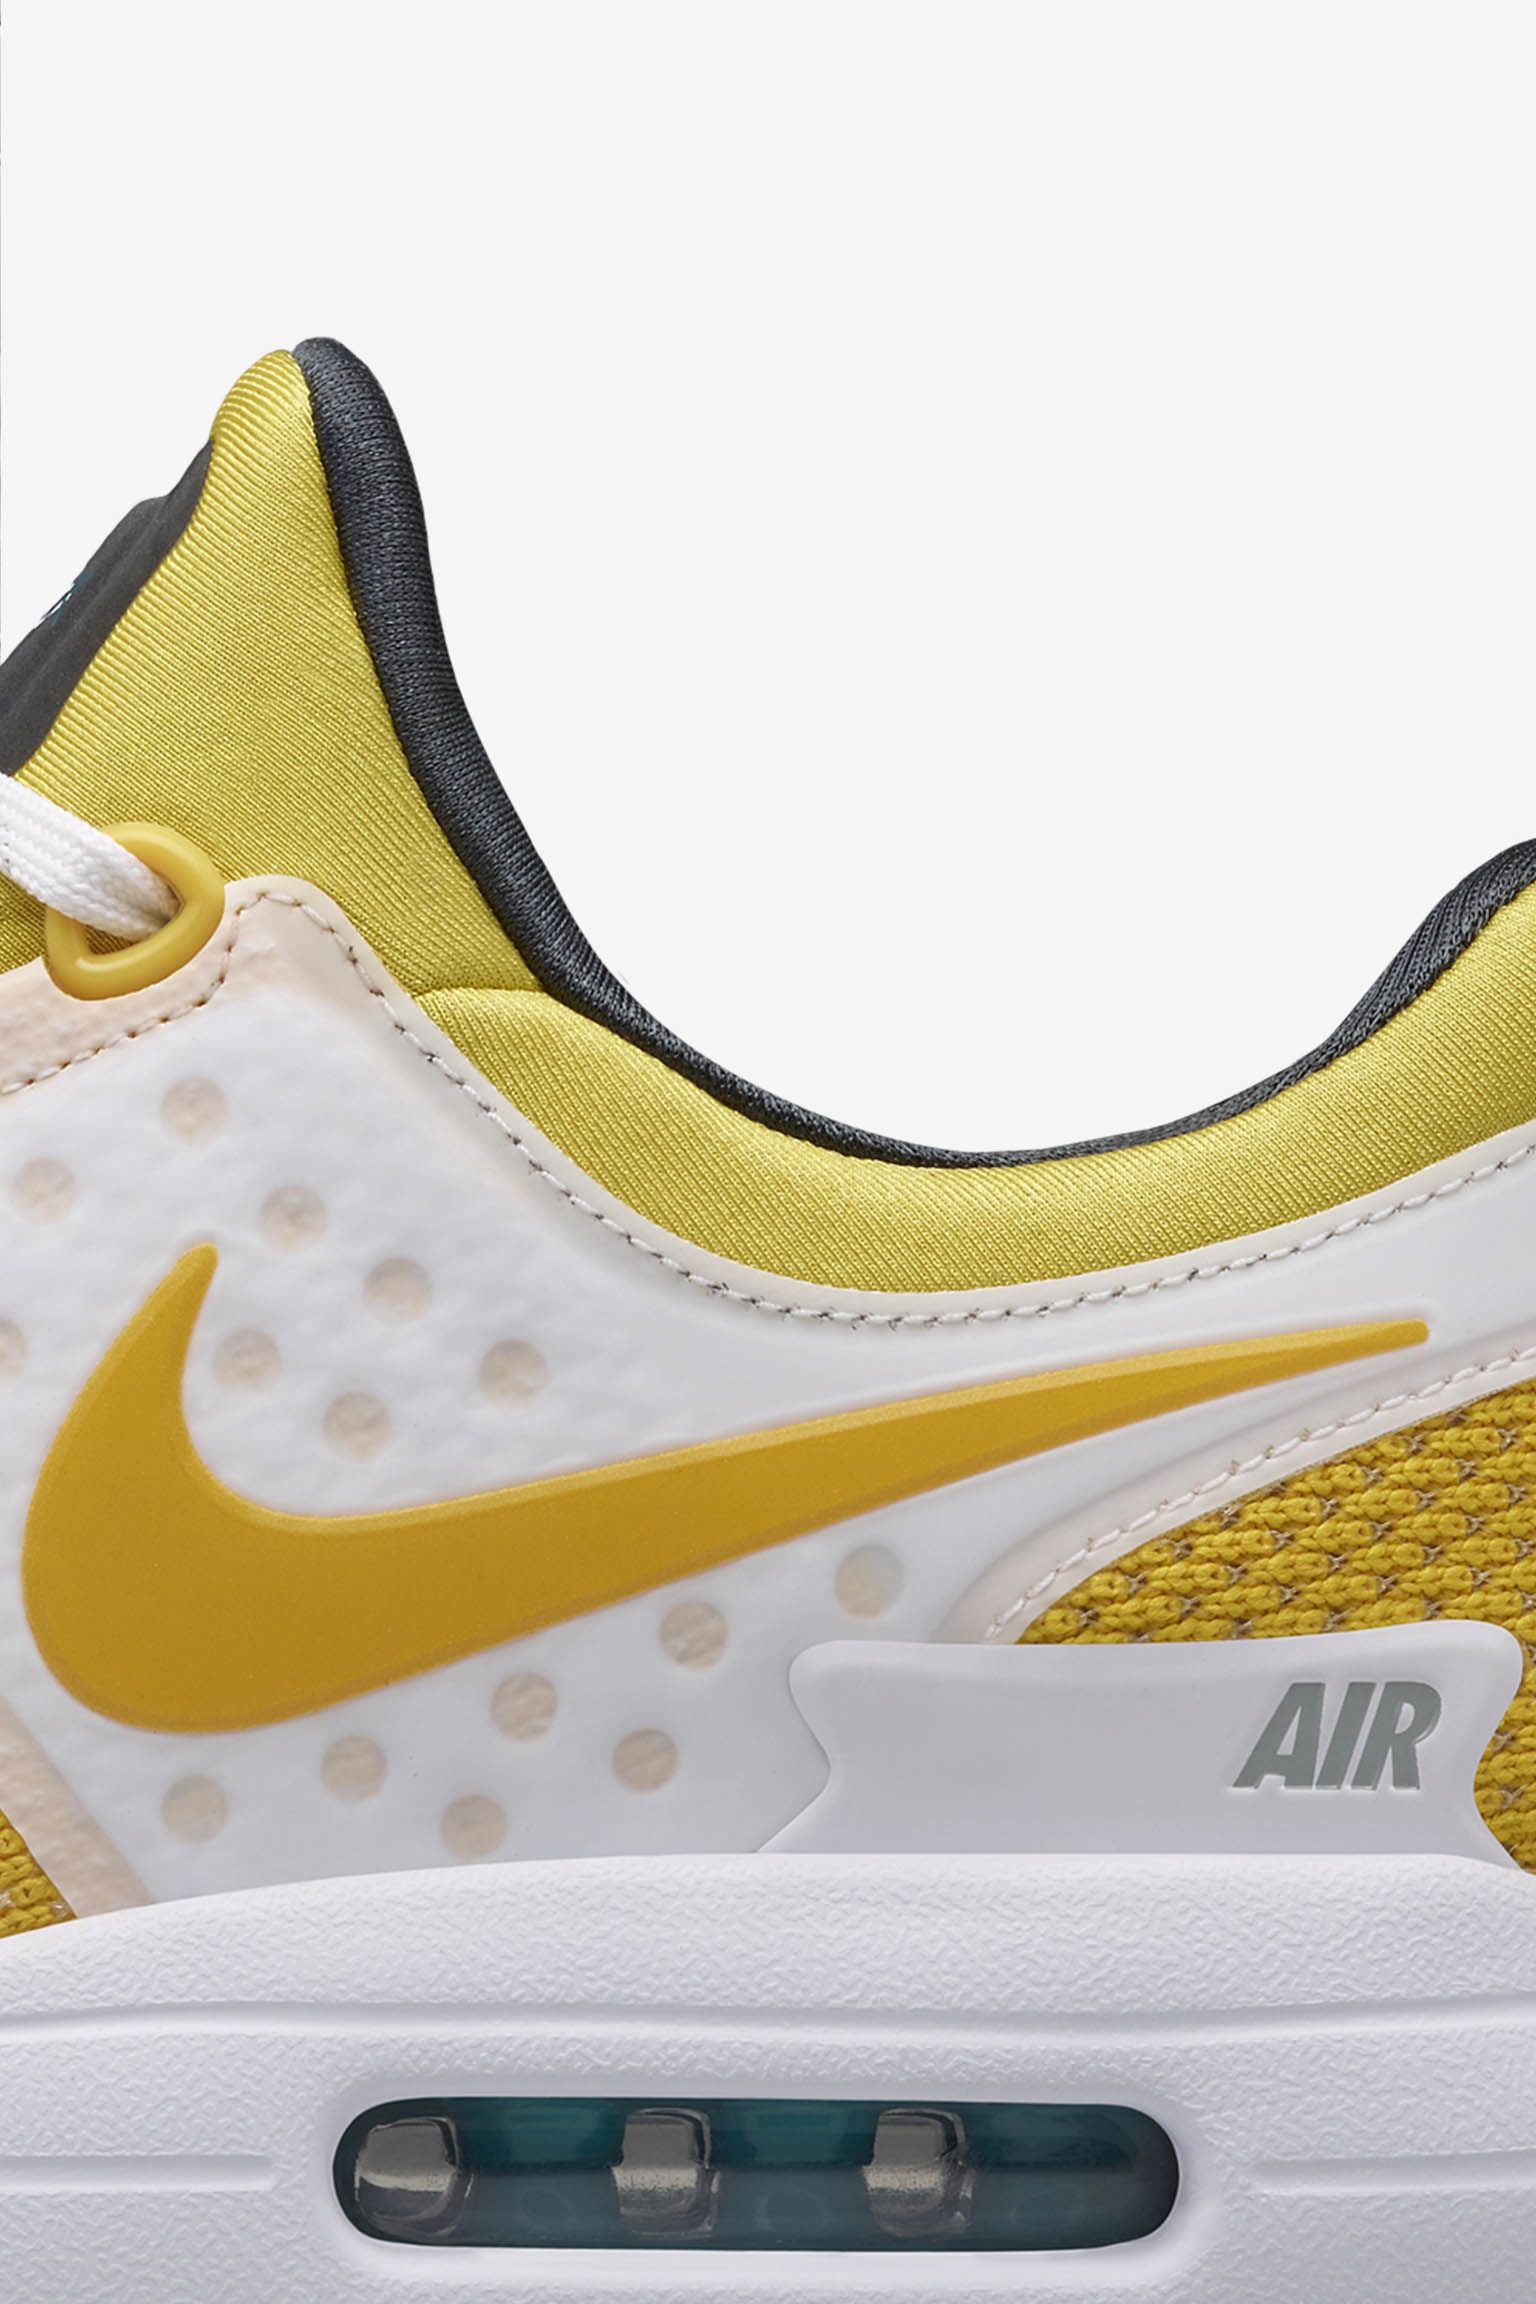 Nike Air Max Zero 'Yellow' Release Date